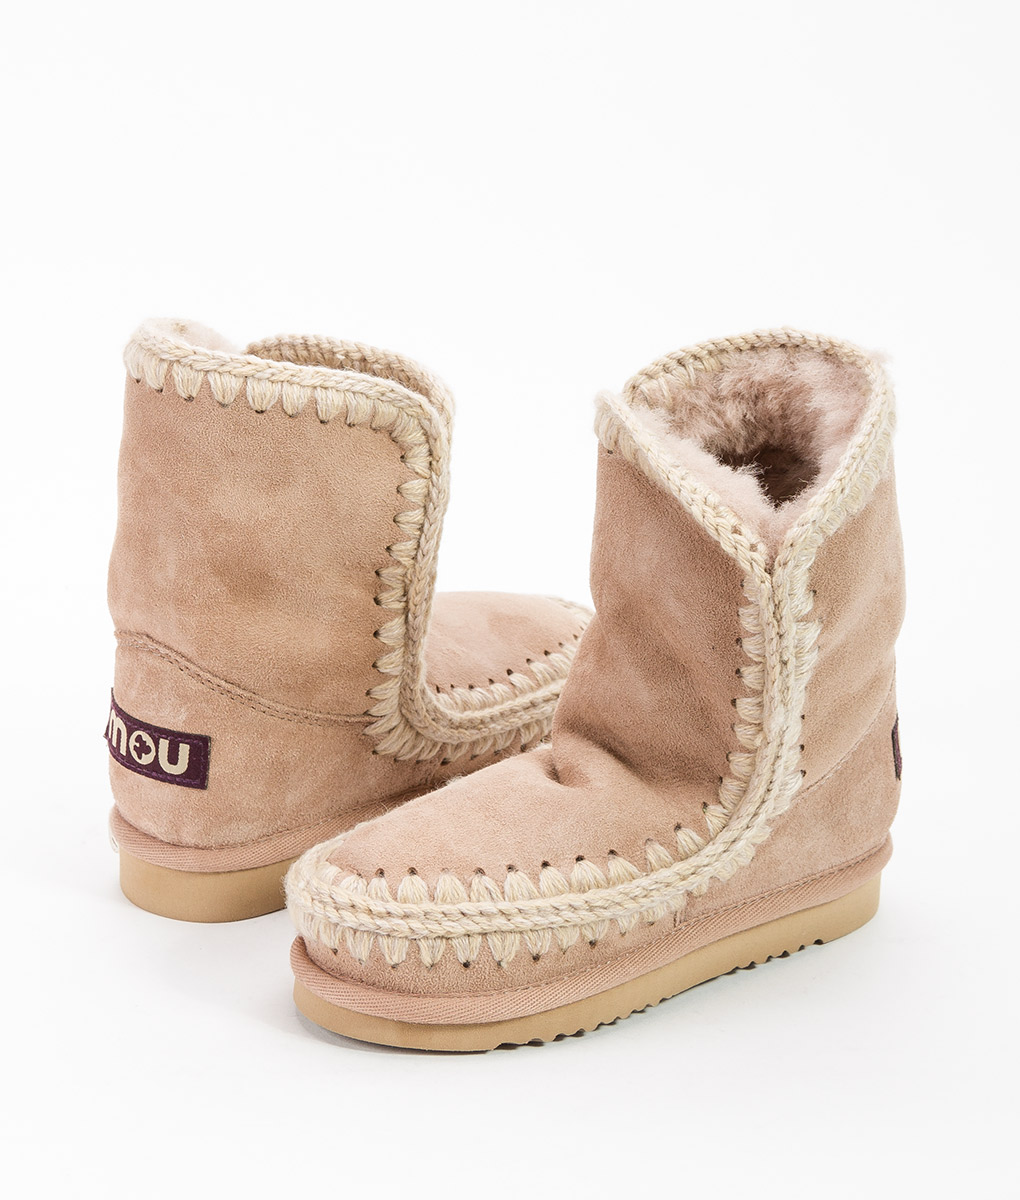 MOU Kids Ankle Boots ESKIMO BOOT, Camel 159.99 1